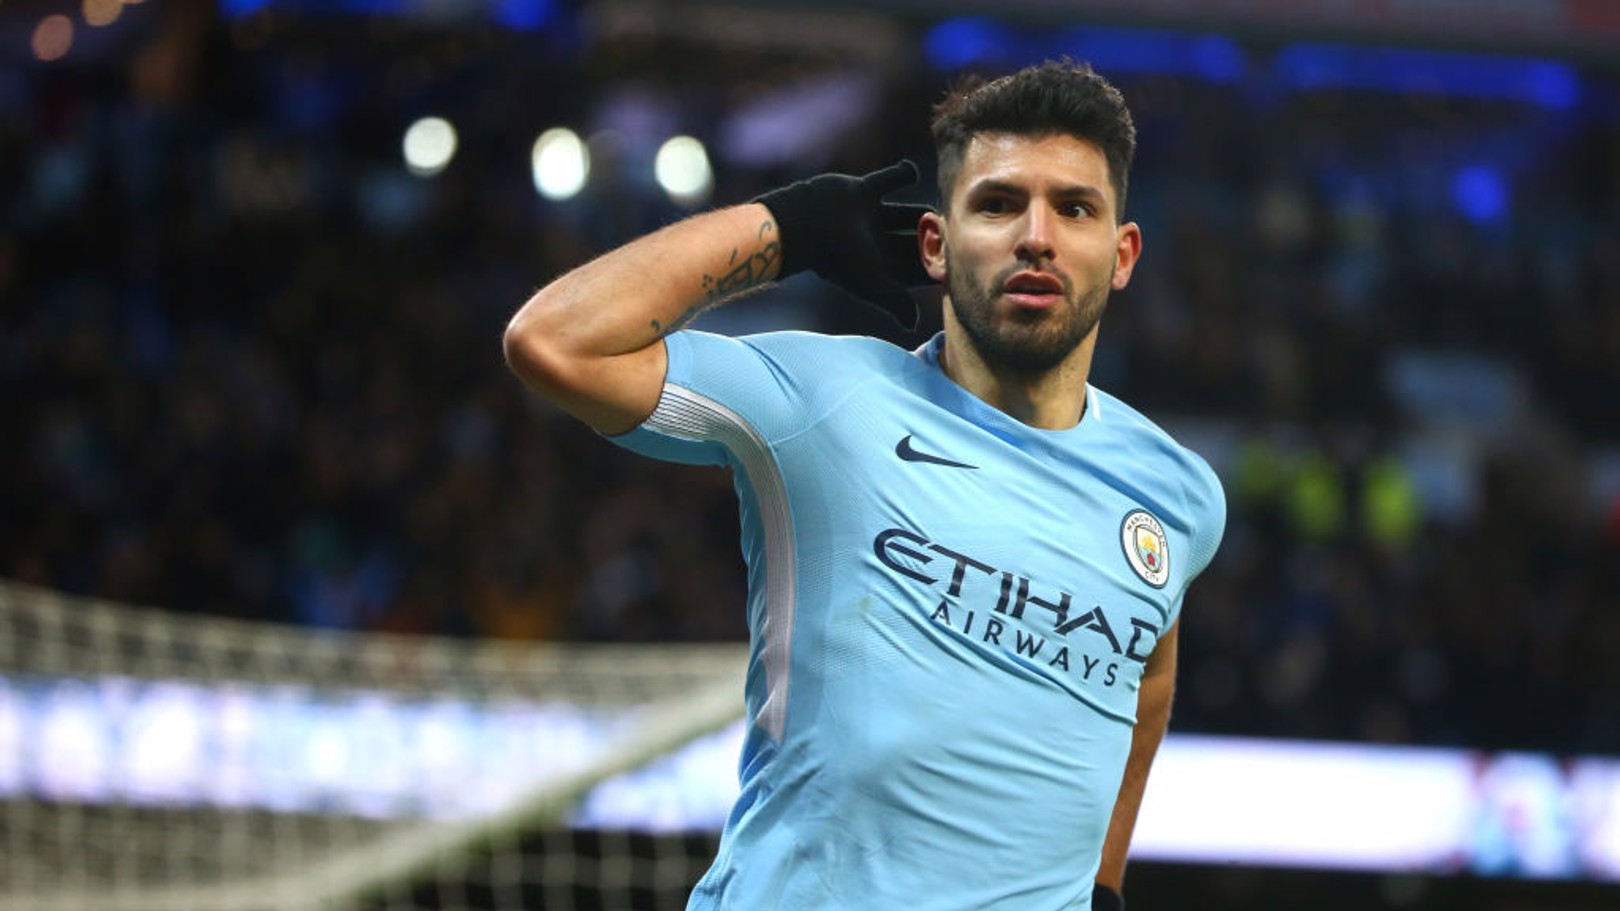 ON FIRE: Sergio Agüero celebrates his 18th goal in 24 games this season.